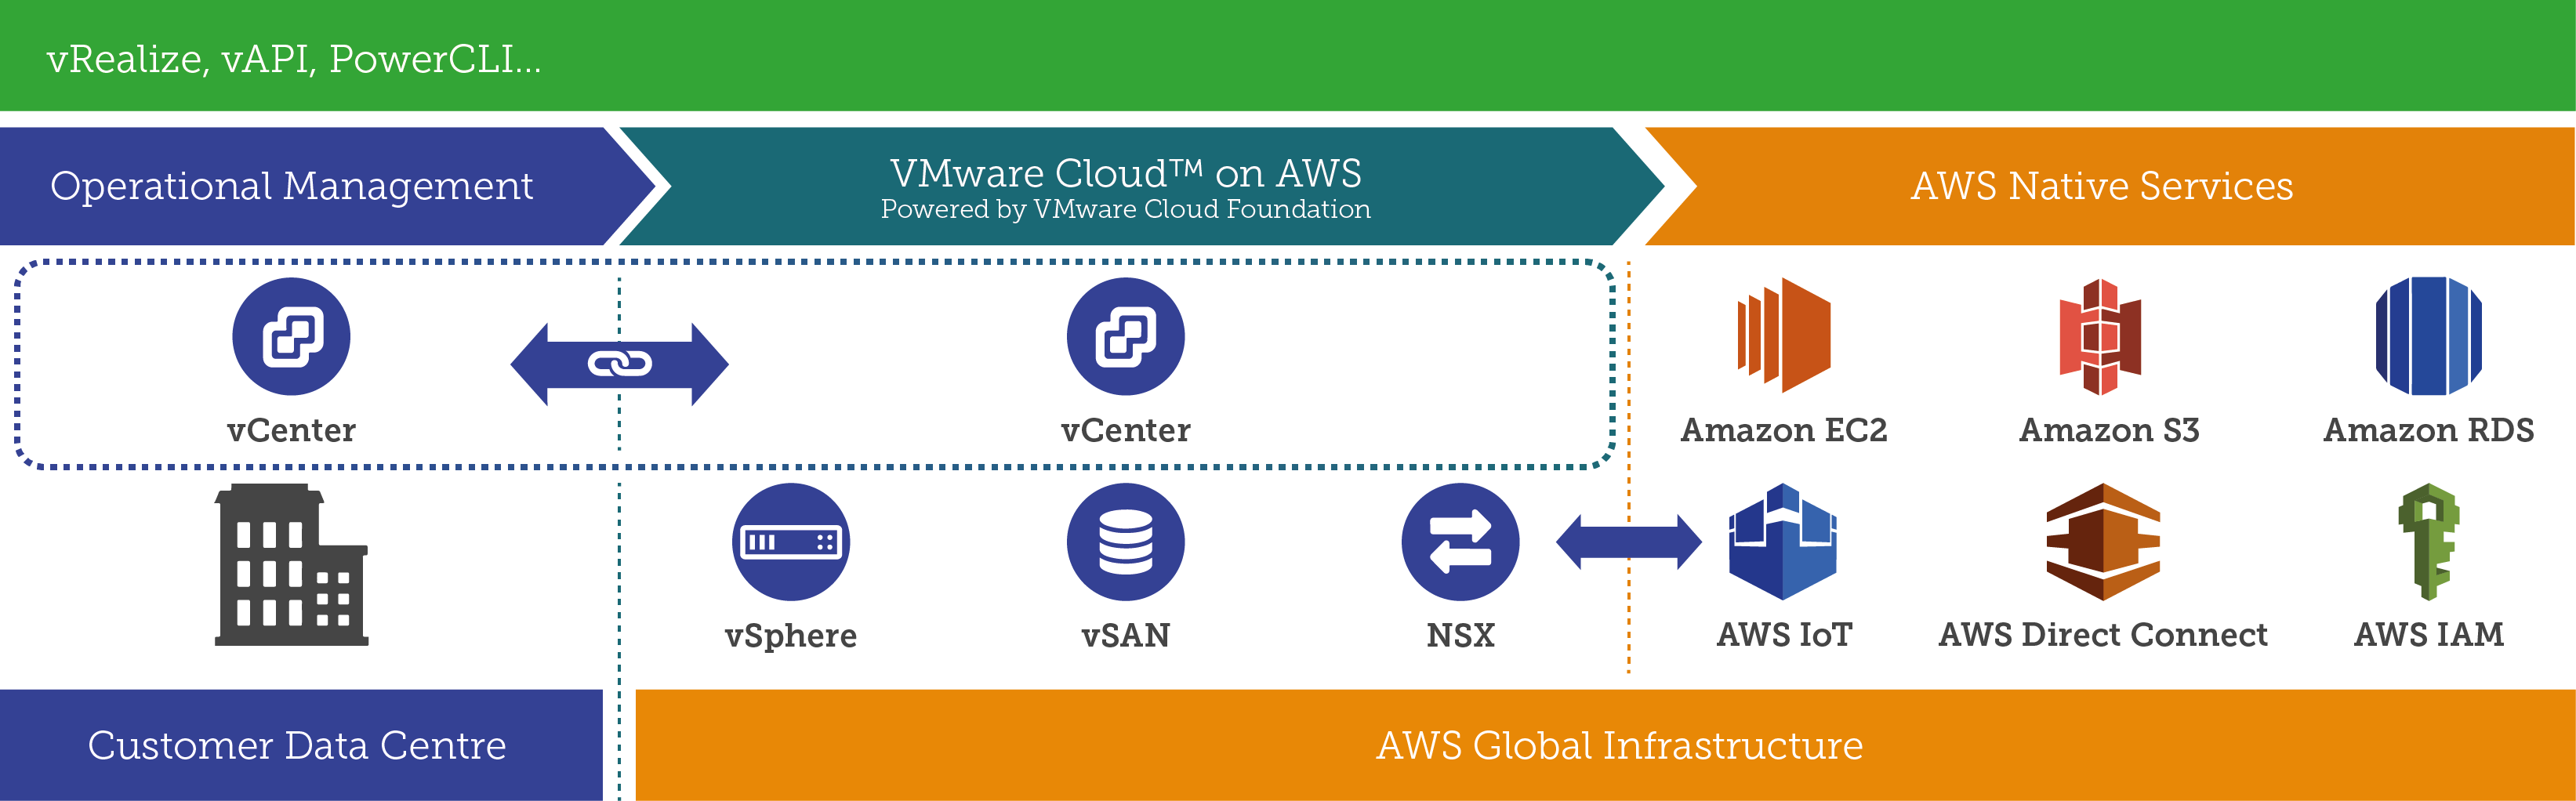 VMware Cloud Services - VMware Cloud on AWS - Xtravirt